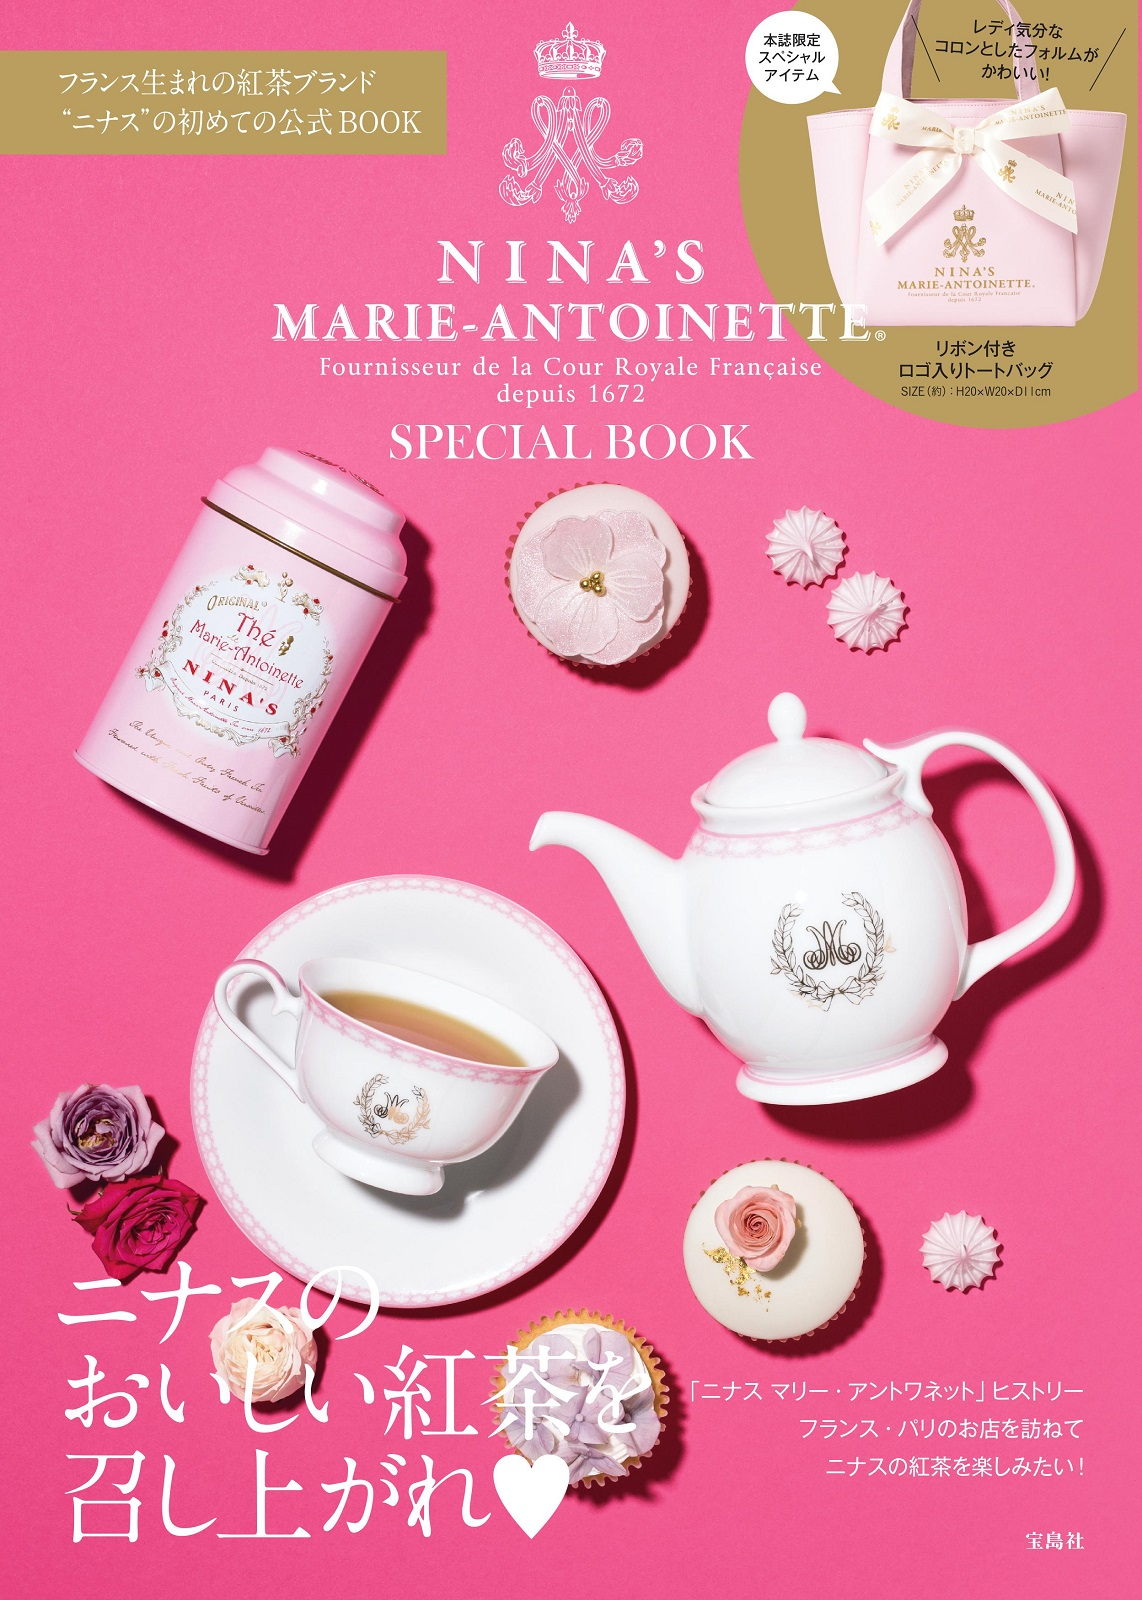 NINA'S MARIE-ANTOINETTE SPECIAL BOOK